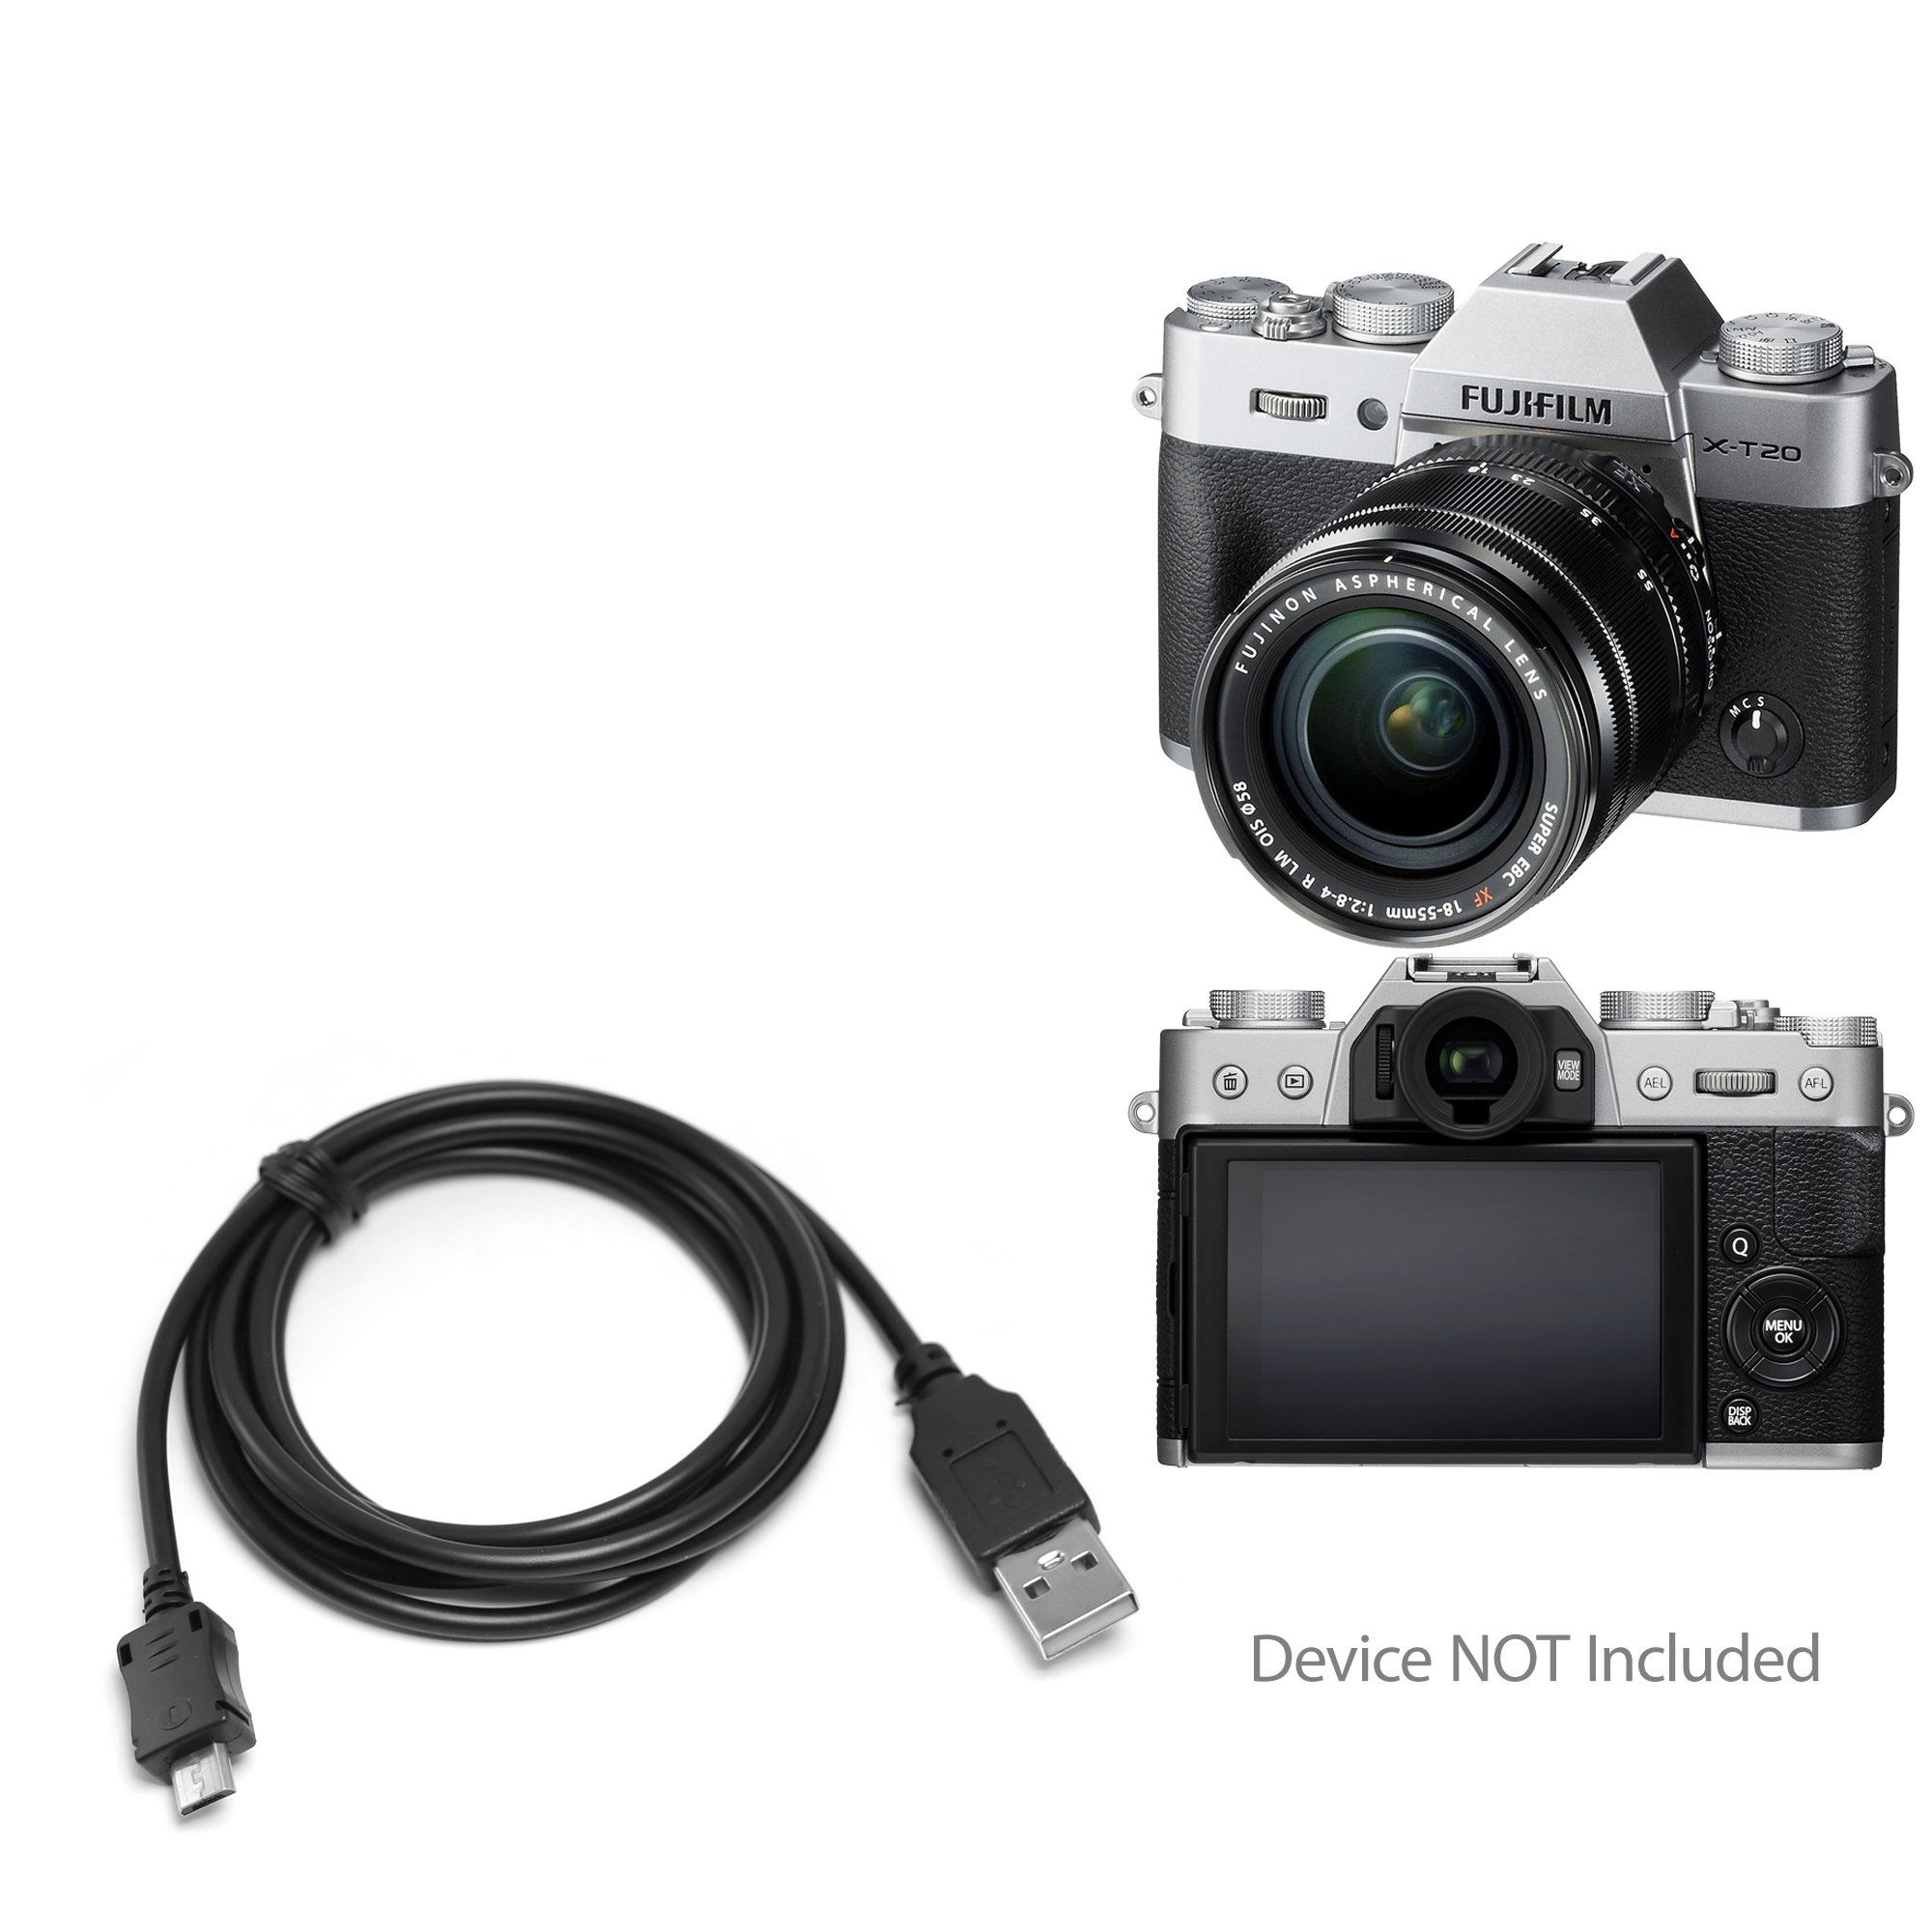 Fujifilm X-T20 Cable, BoxWave [DirectSync Cable] Durable Charge and Sync Cable for Fujifilm X-T20